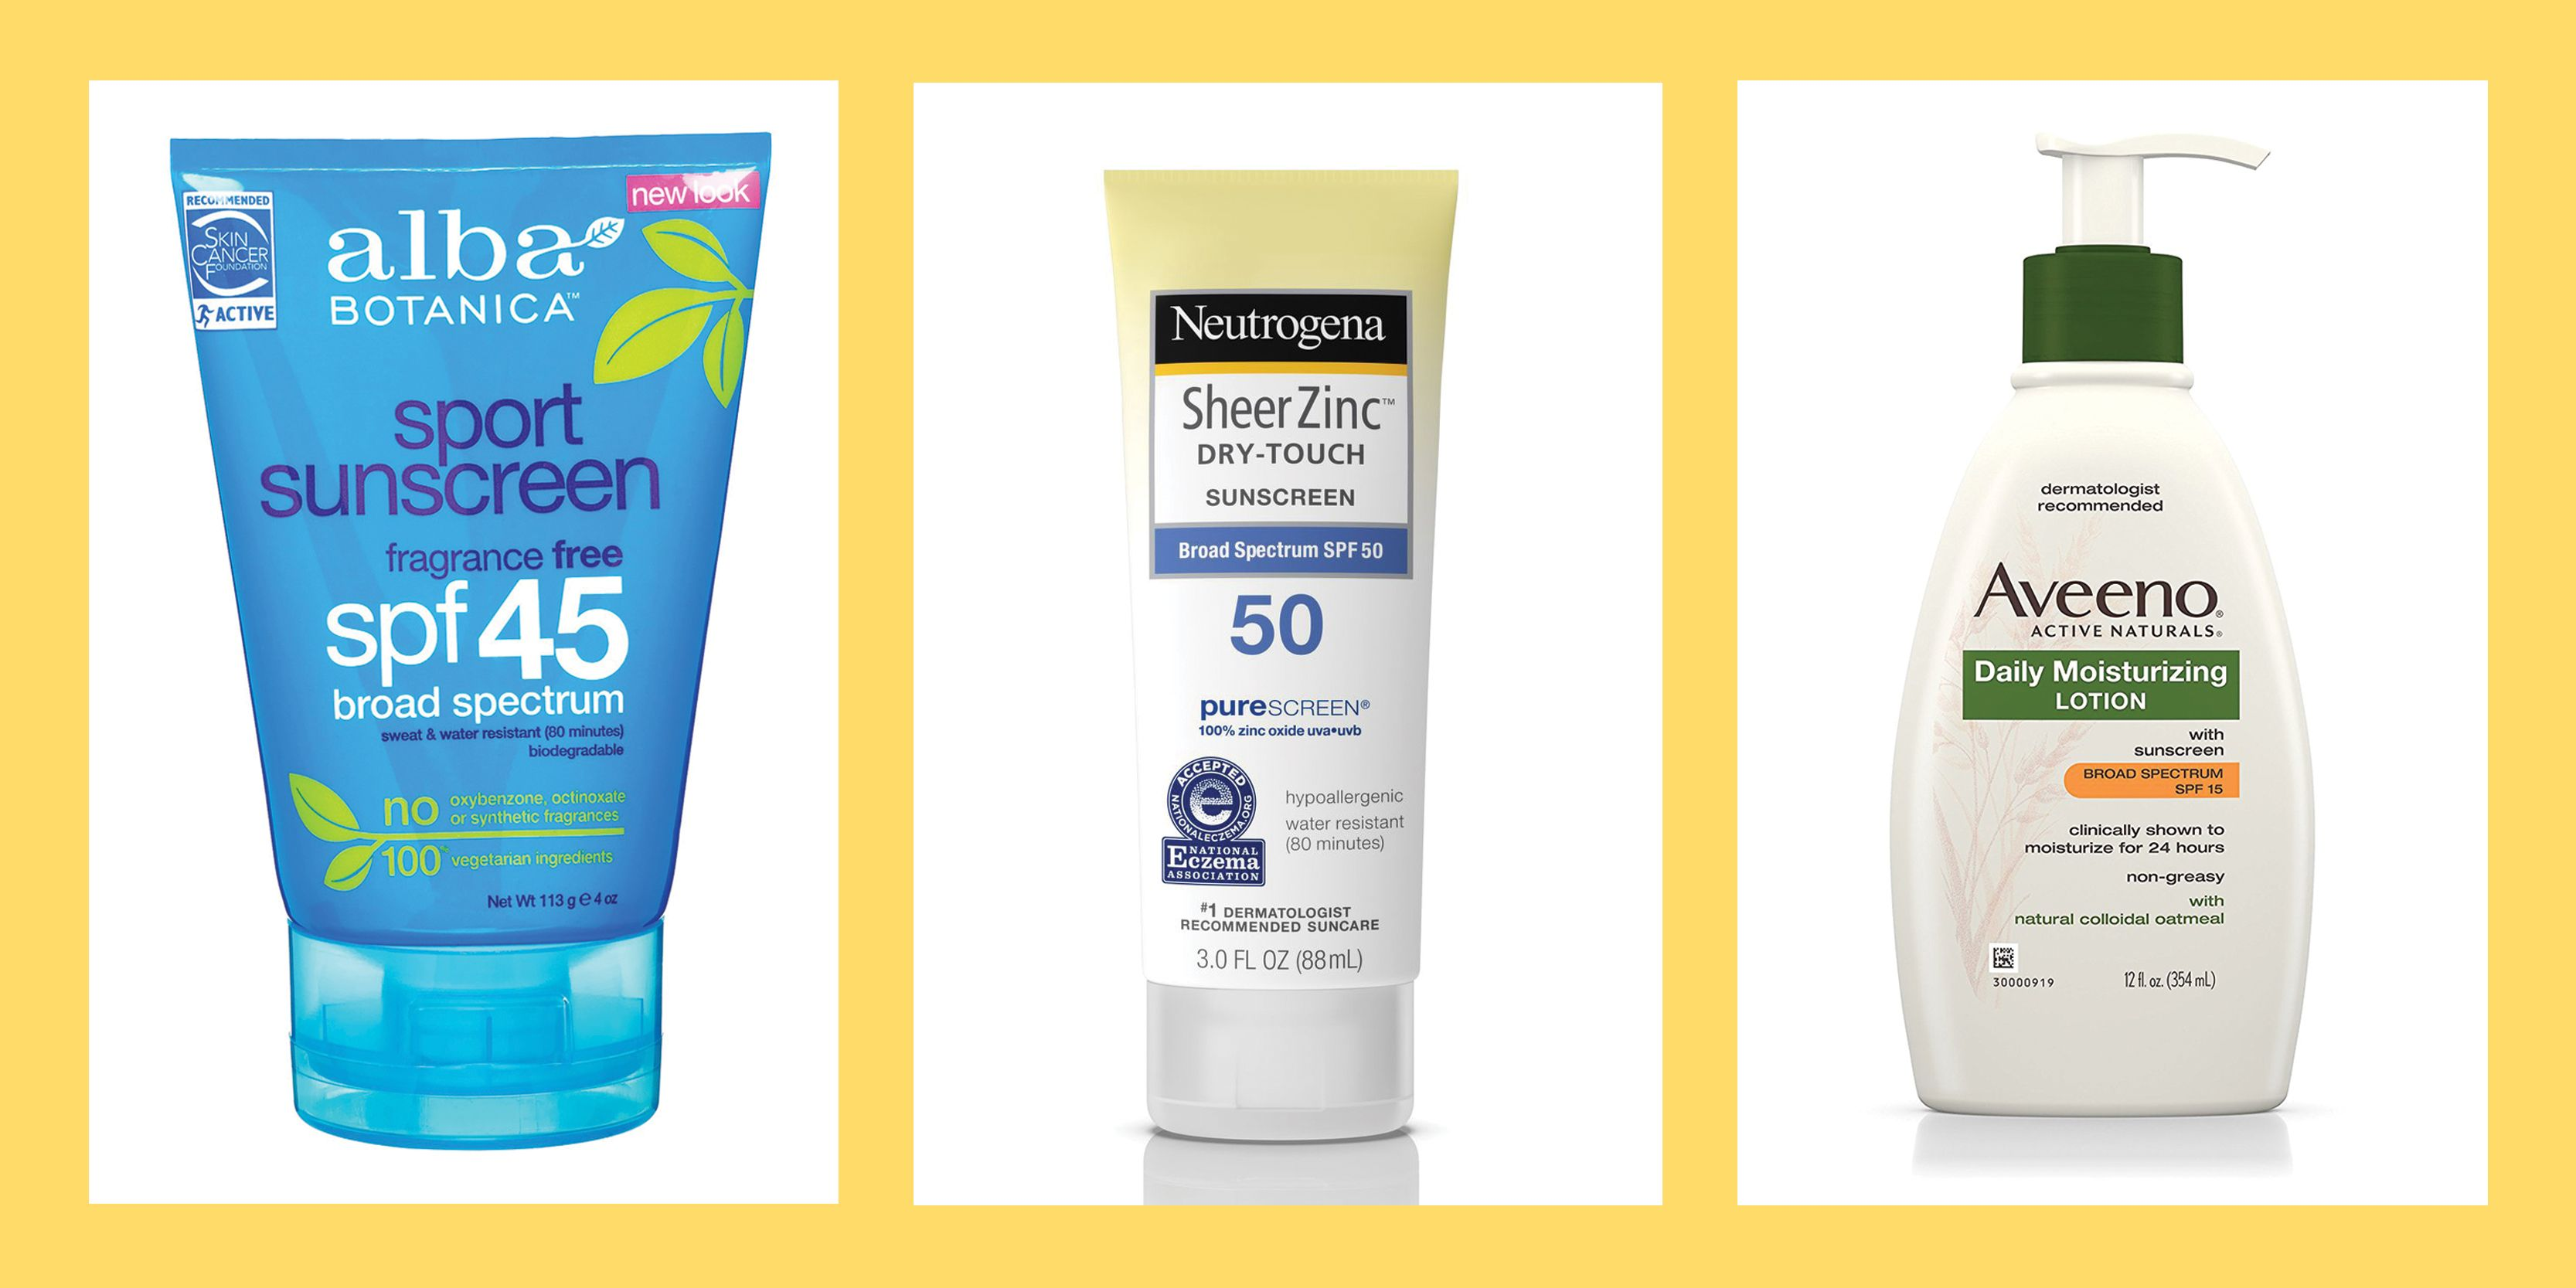 9 Best Sunscreens When Youre Over 40, According To Experts